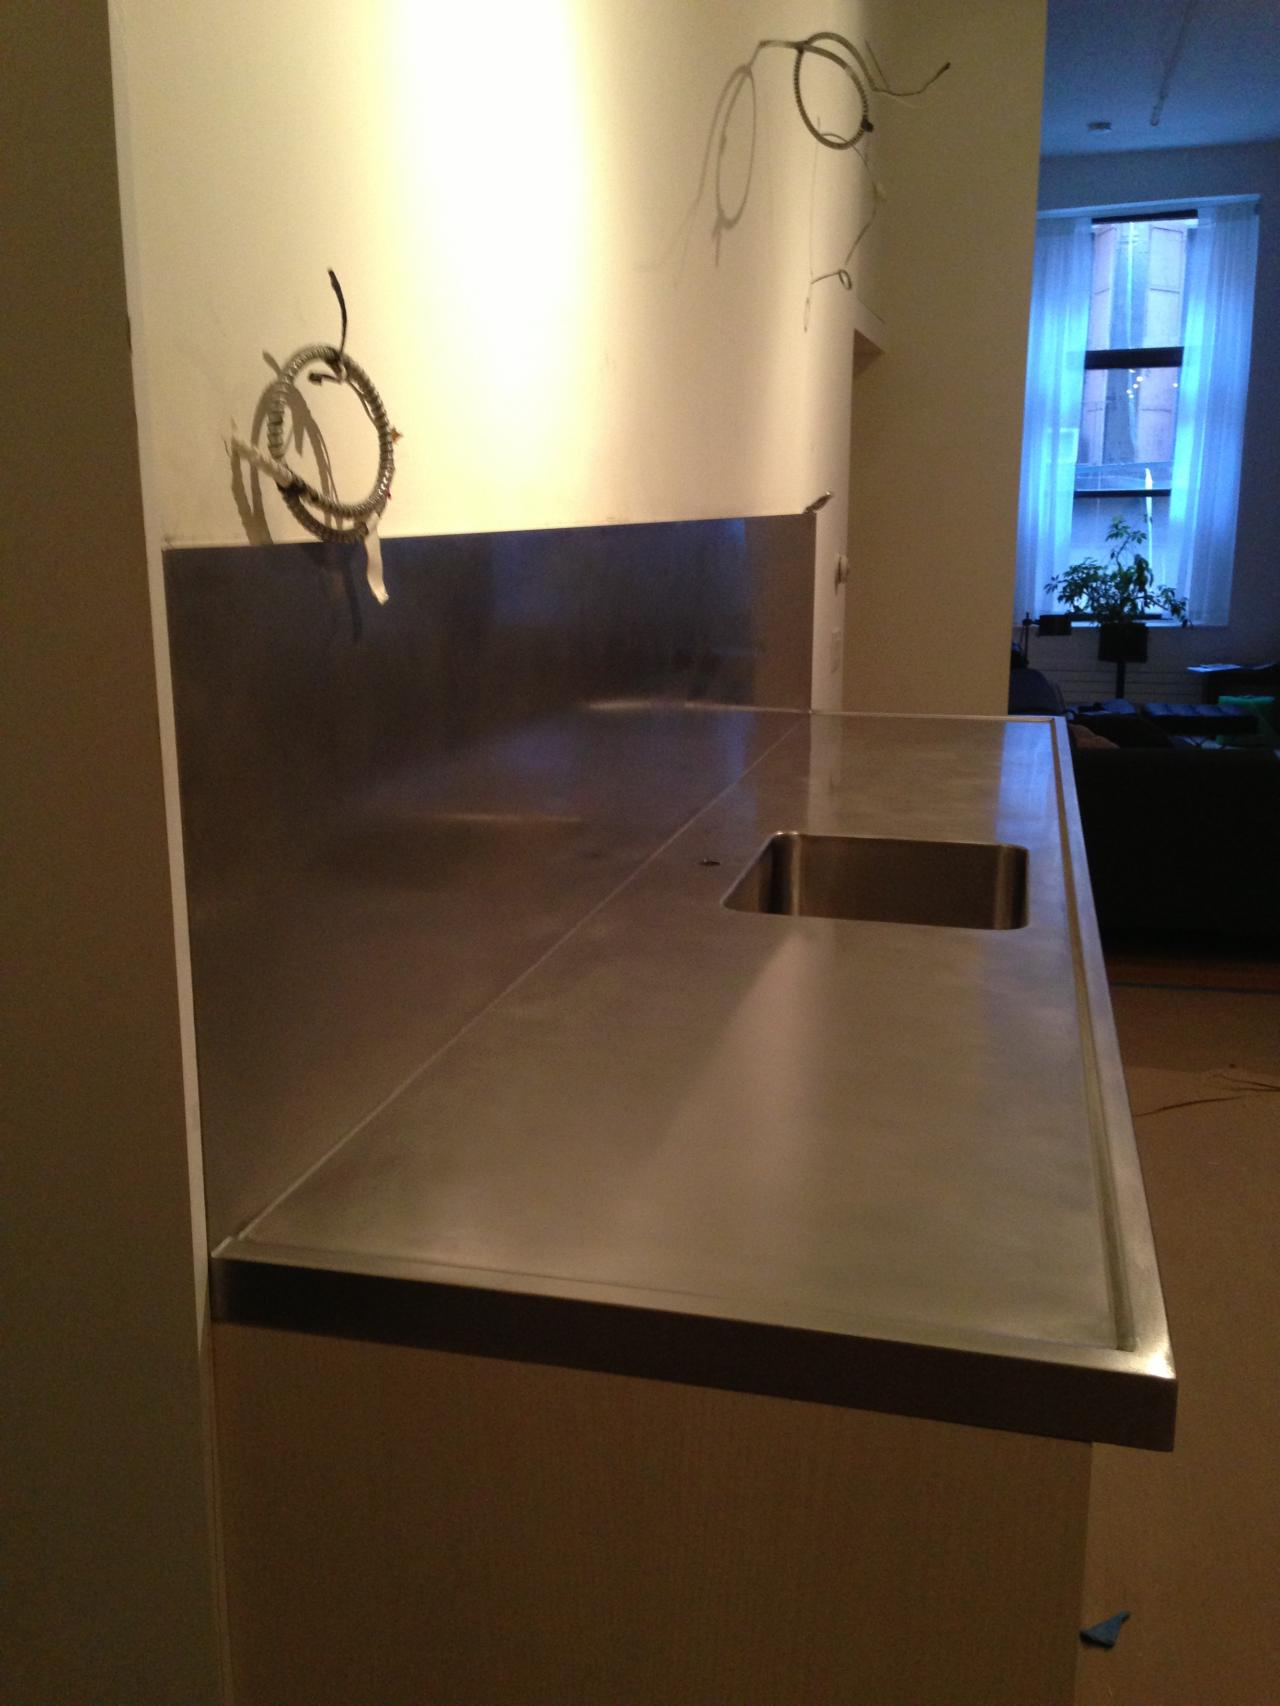 J Amp J Stainless Steel Supplies Inc Counter Top